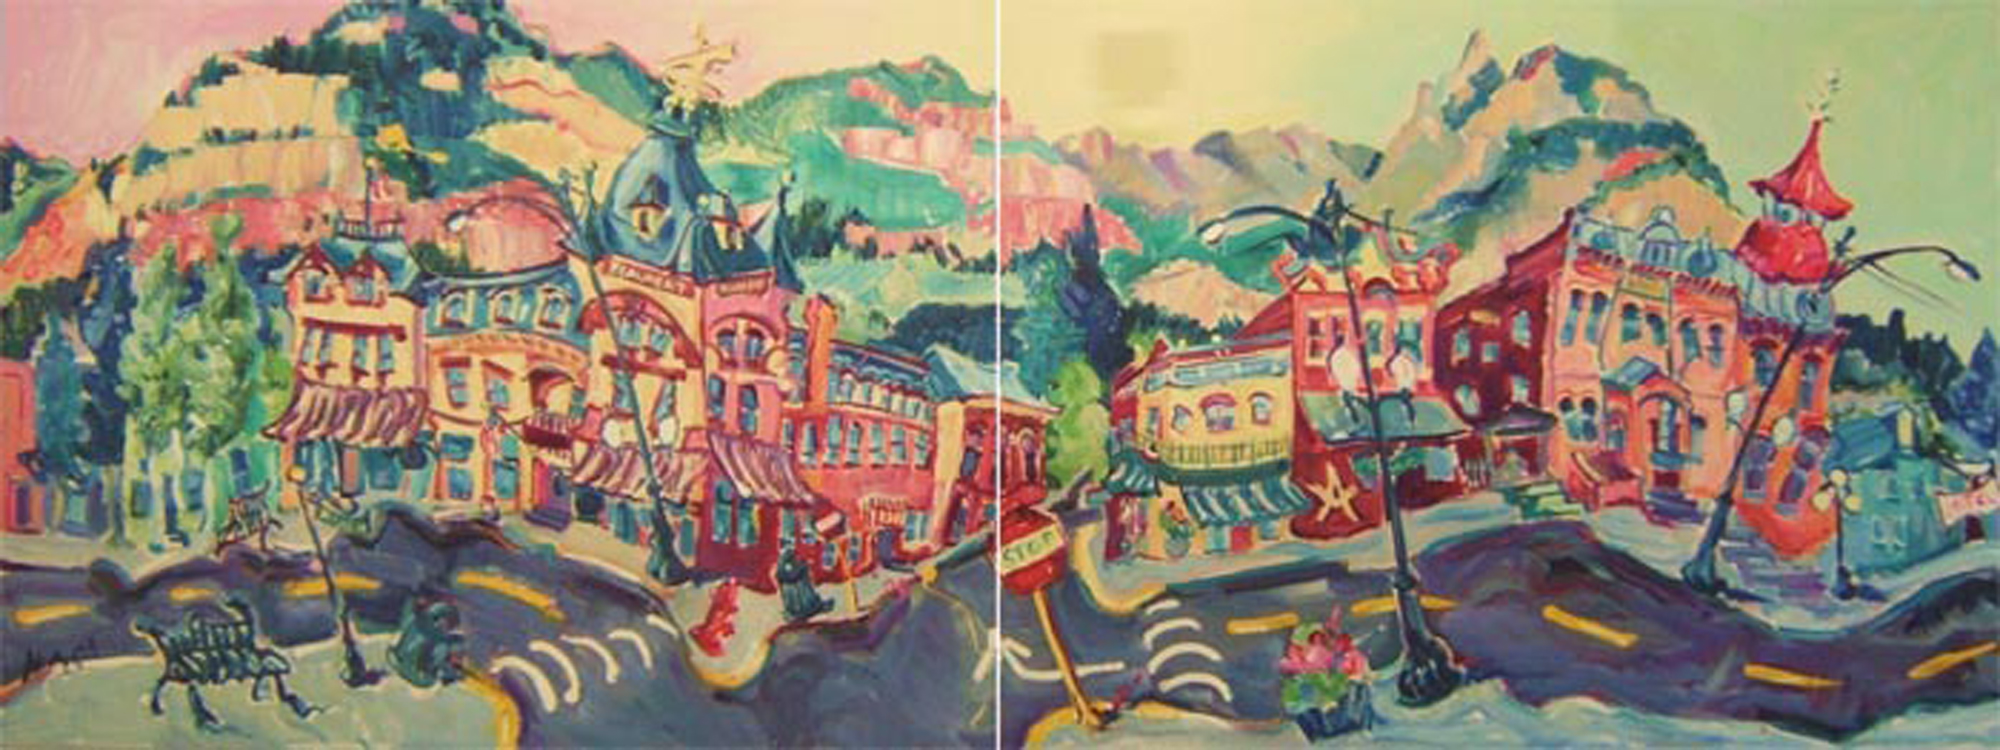 "SOLD L022 2009 'Beaumont, Elks, Masons, Downtown Ouray' Diptych. 48""x36"" 48""x36"""